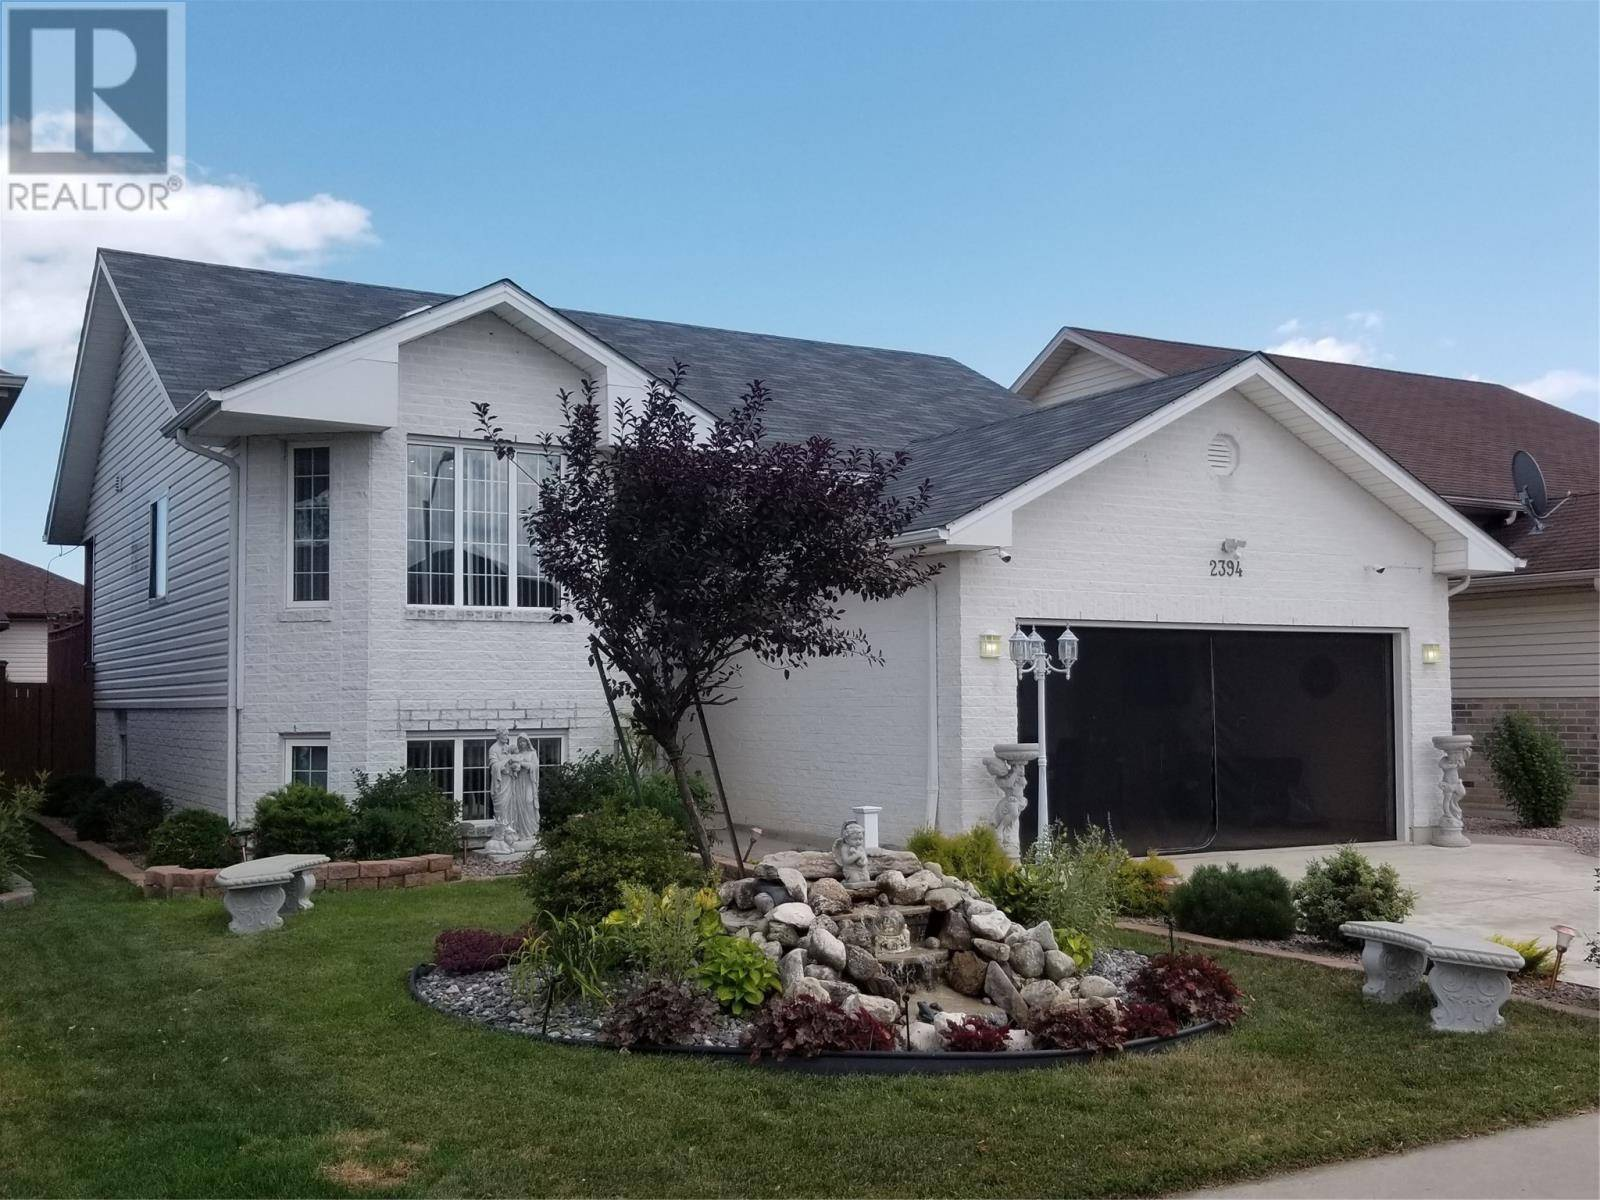 House for sale at 2394 Duneshill  Windsor Ontario - MLS: 19023332